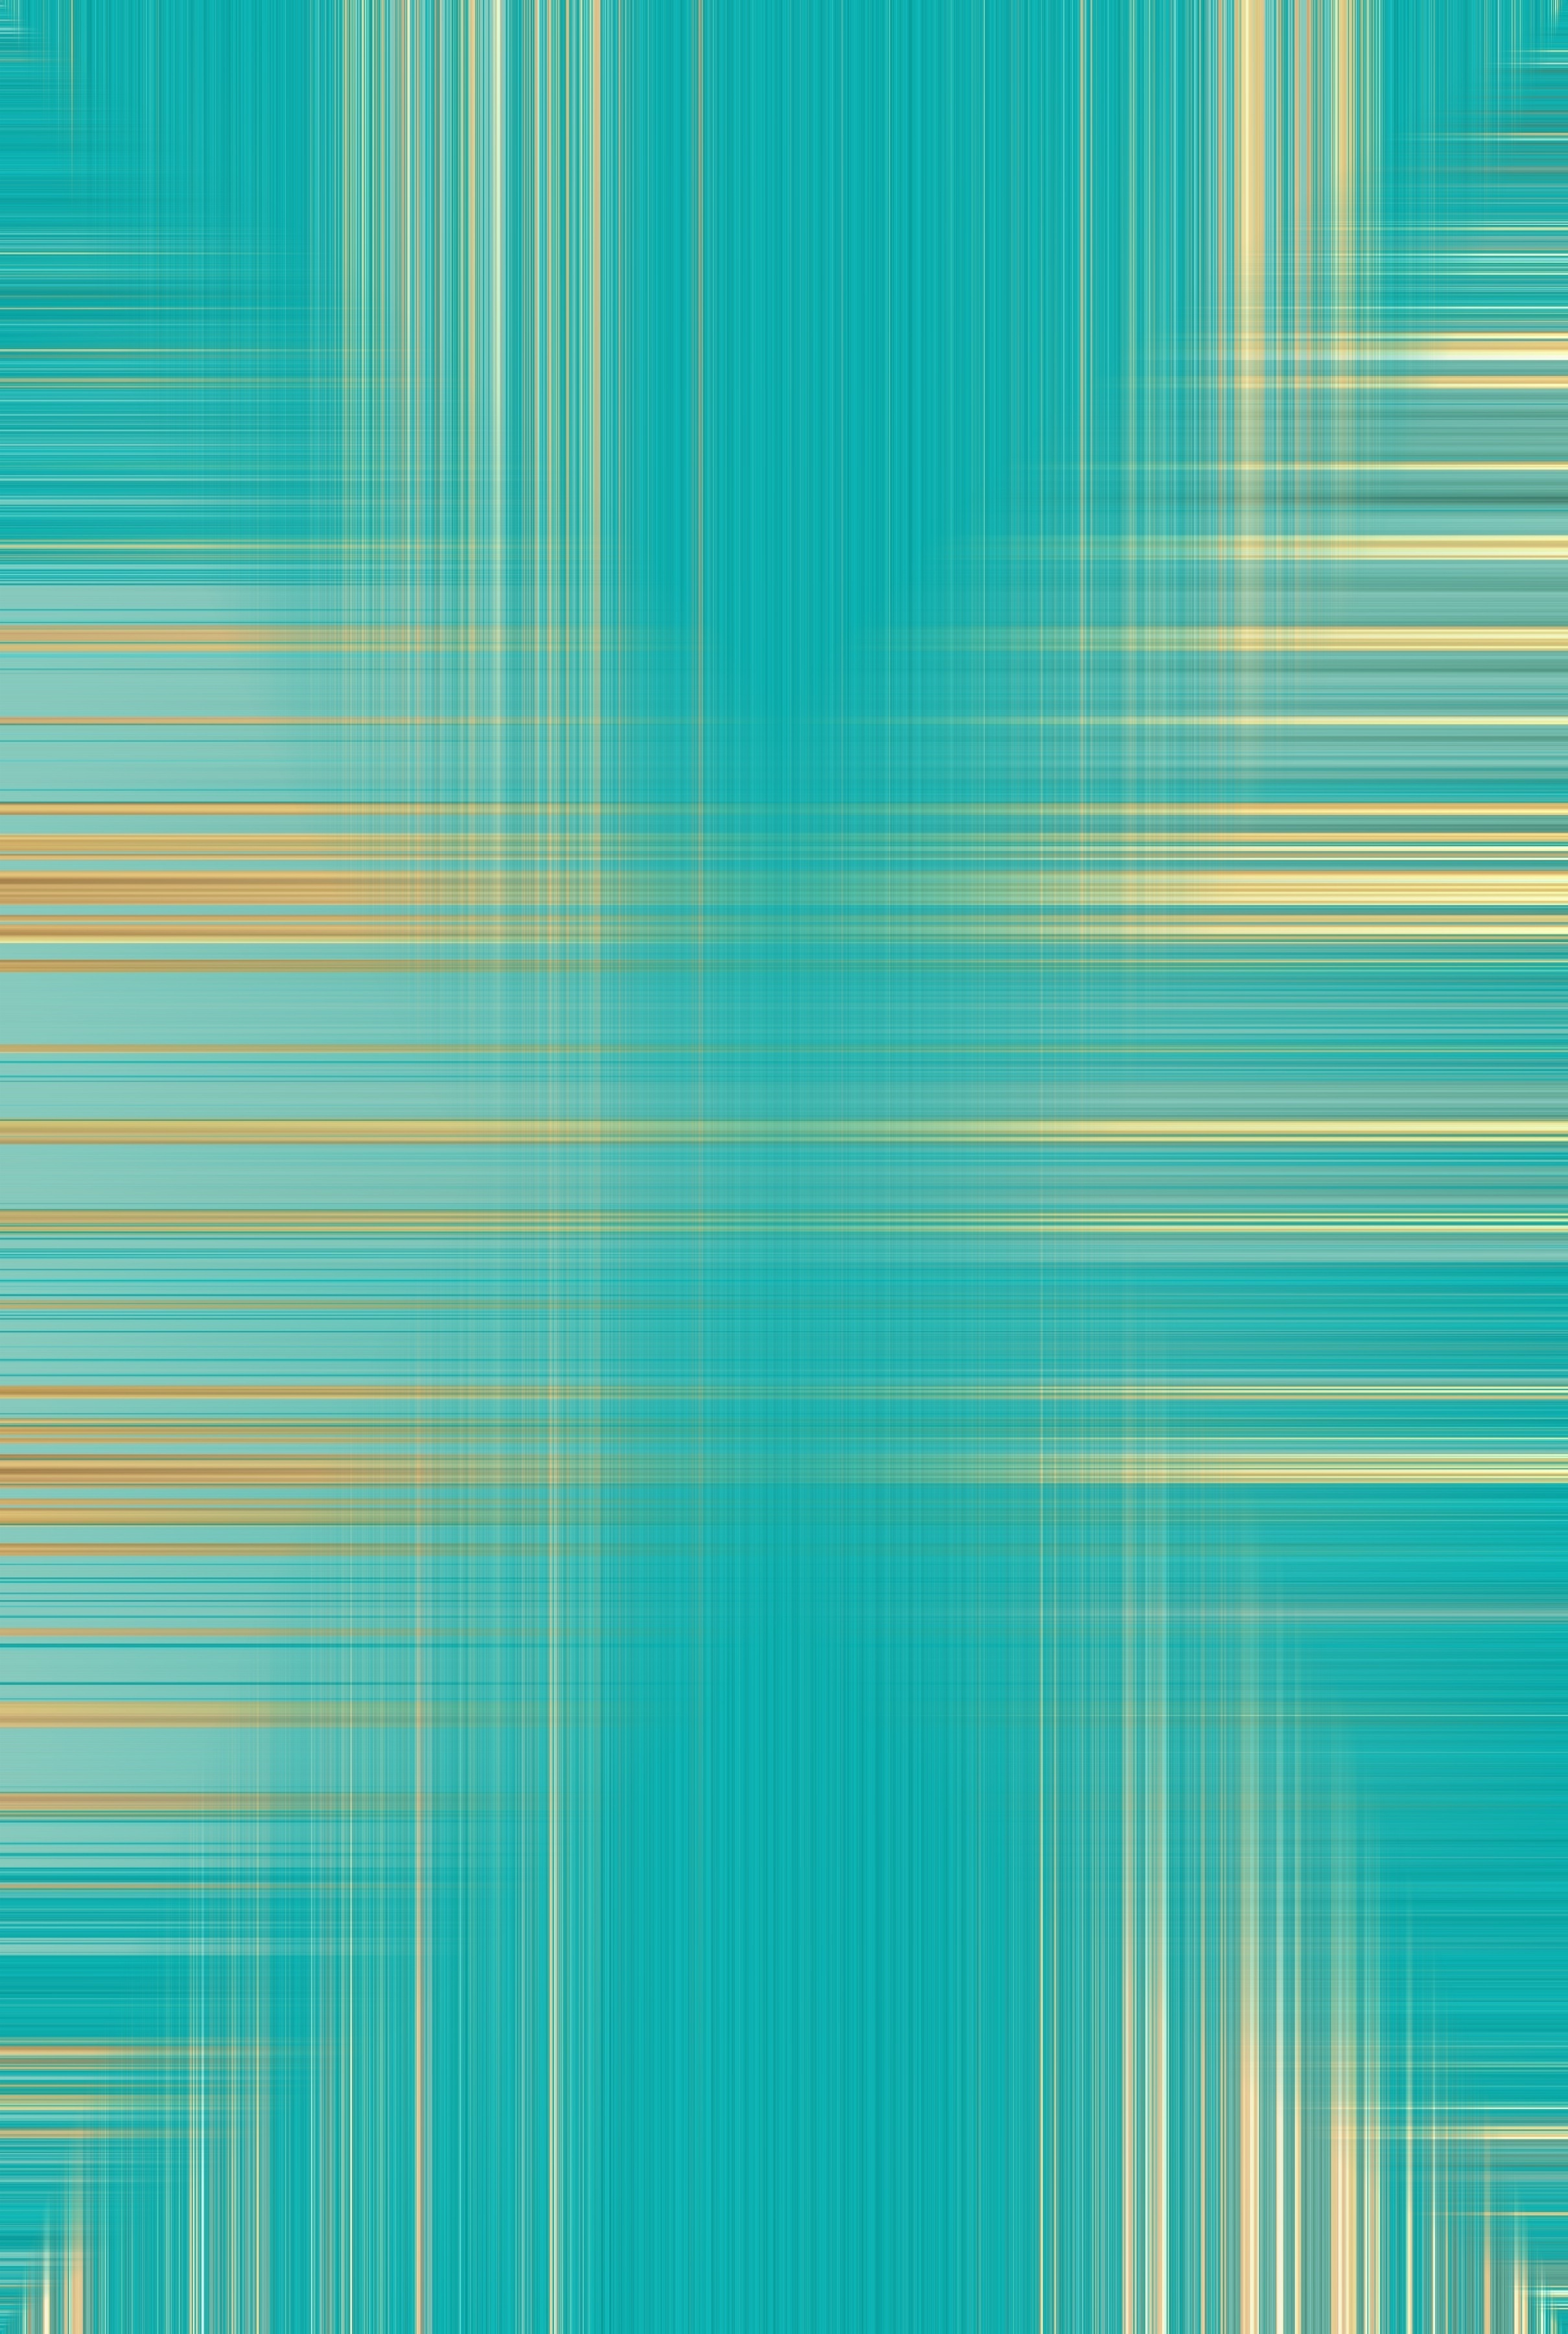 92706 free download Turquoise wallpapers for phone, Textures, Texture, Lines, Stripes, Streaks, Graphics Turquoise images and screensavers for mobile